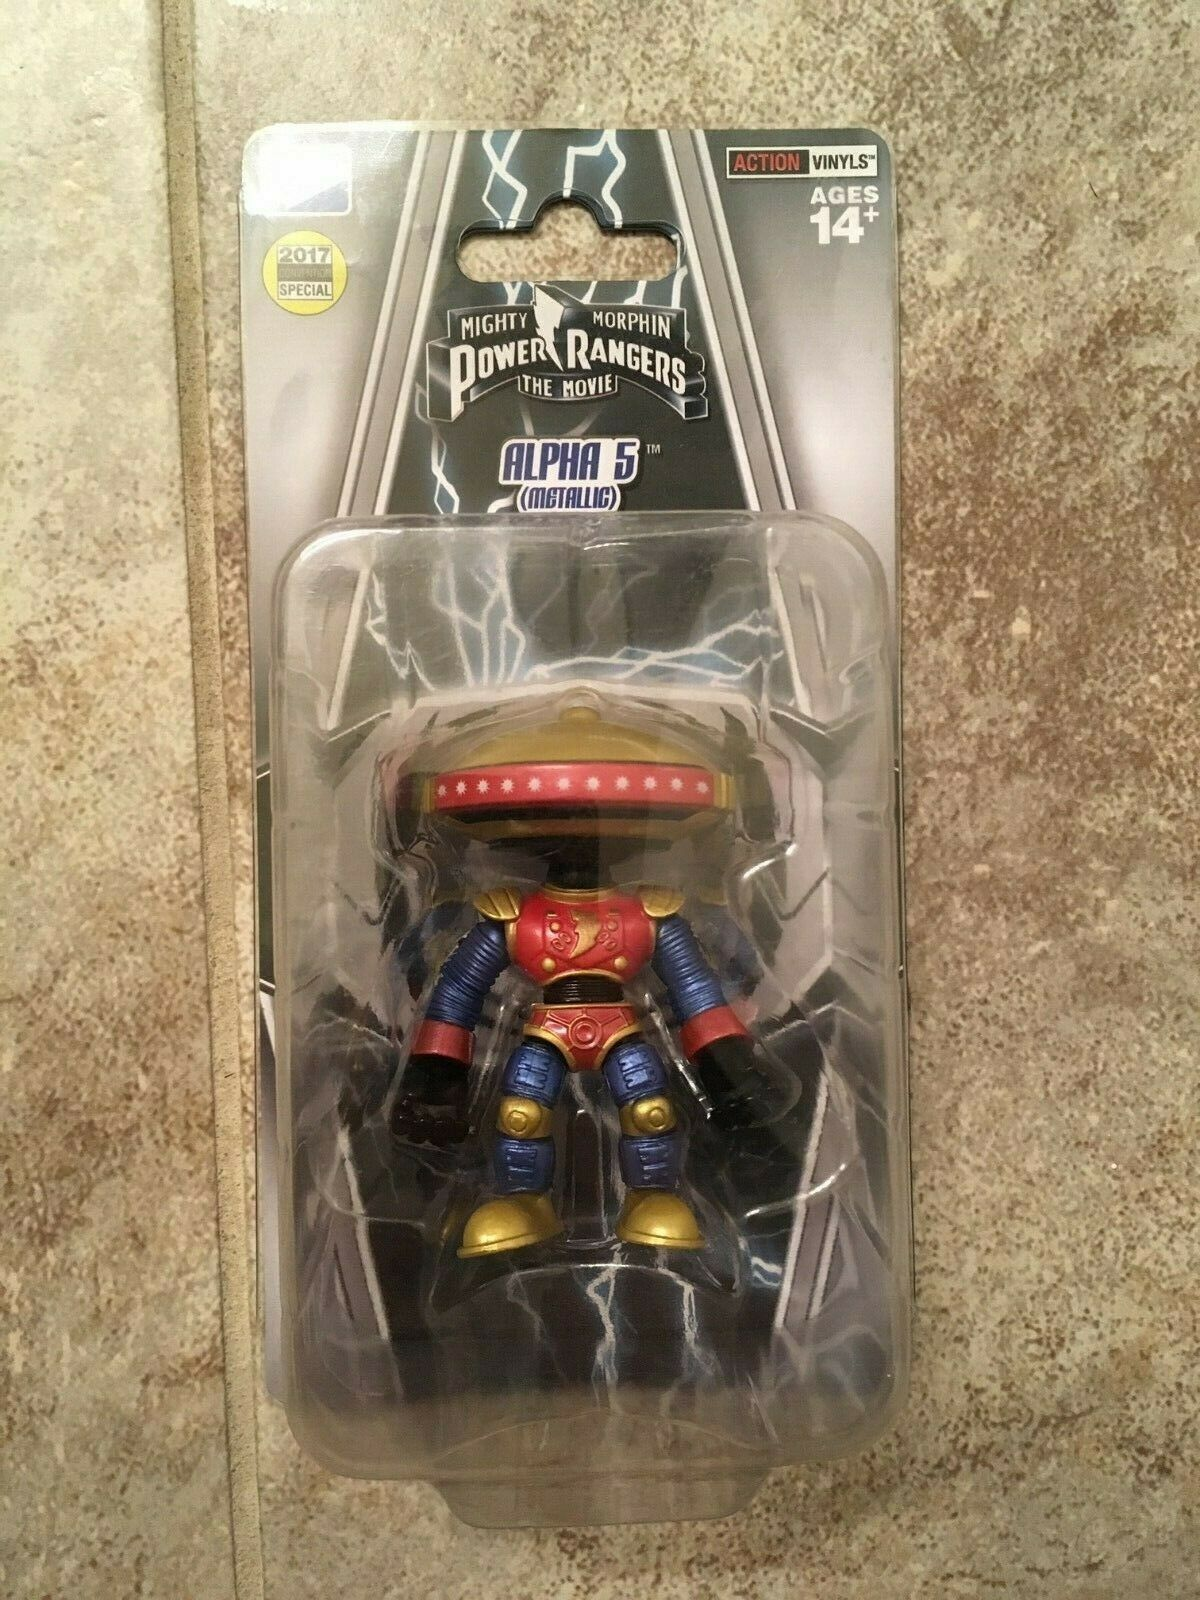 2017 Loyal Subjects Mighty Morphin energia Rangers Alpha 5 SDCC estrella Variant